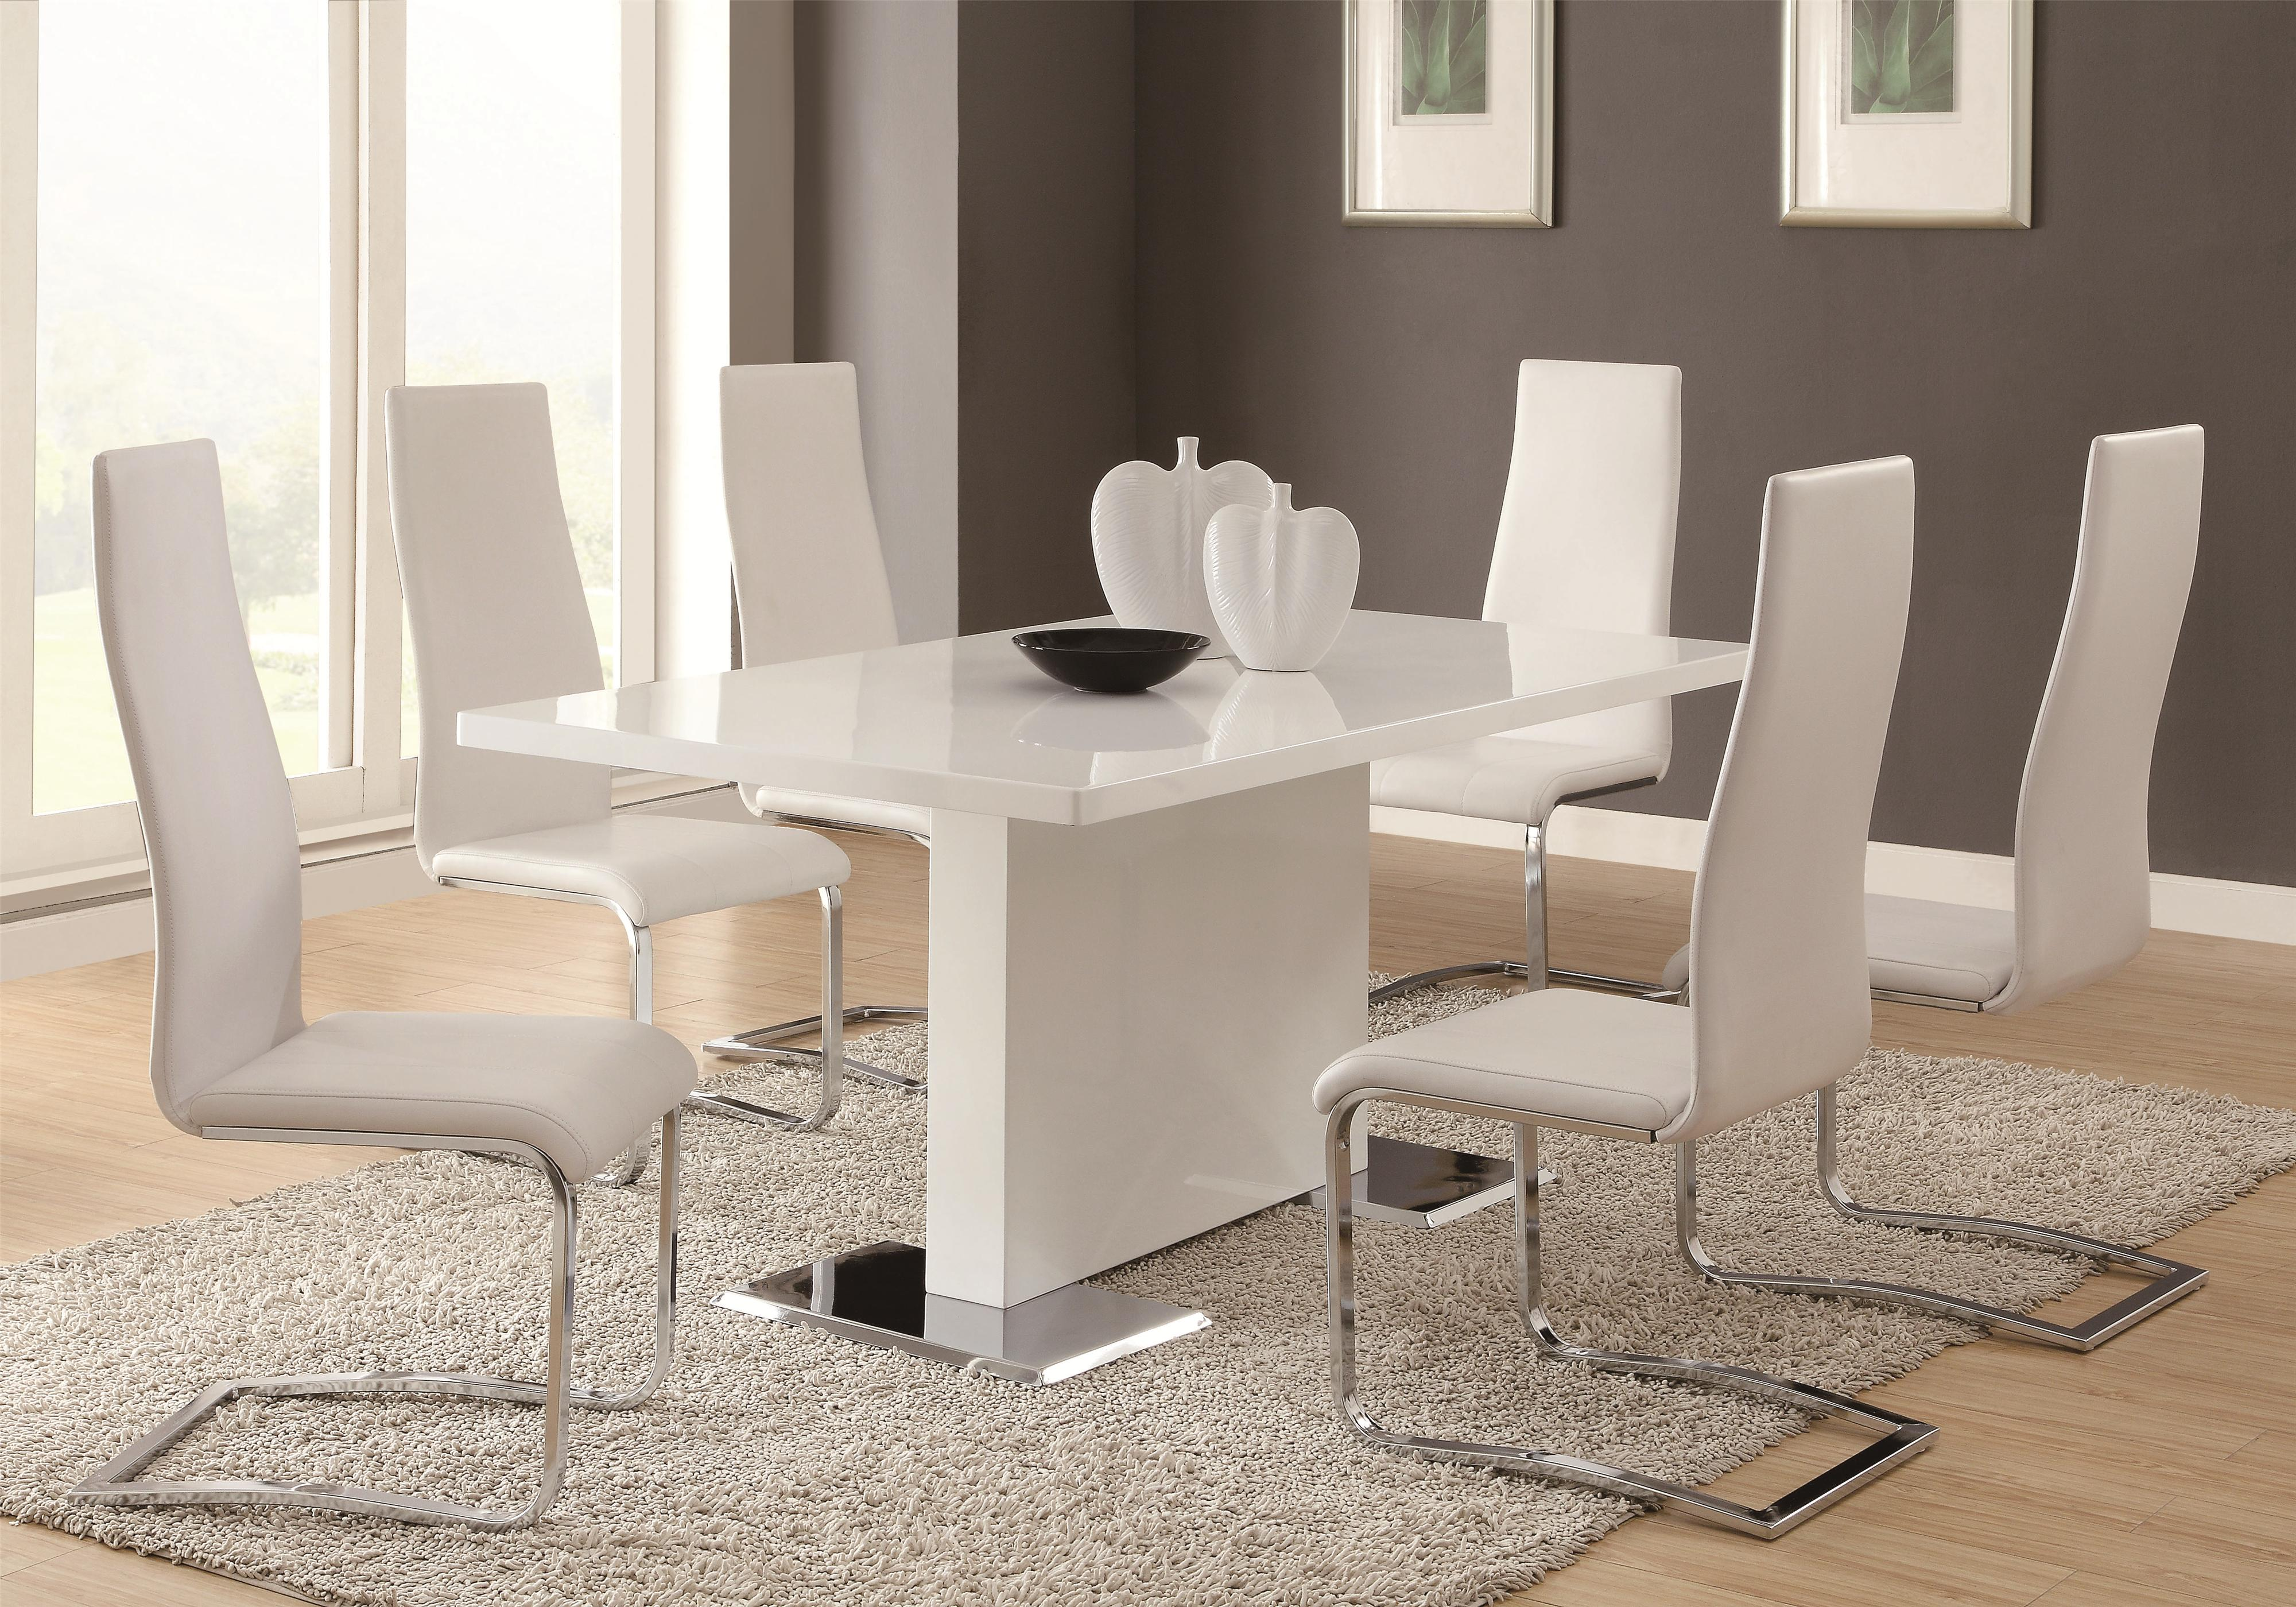 Coaster Modern Dining 7 Piece White TableWhite Upholstered